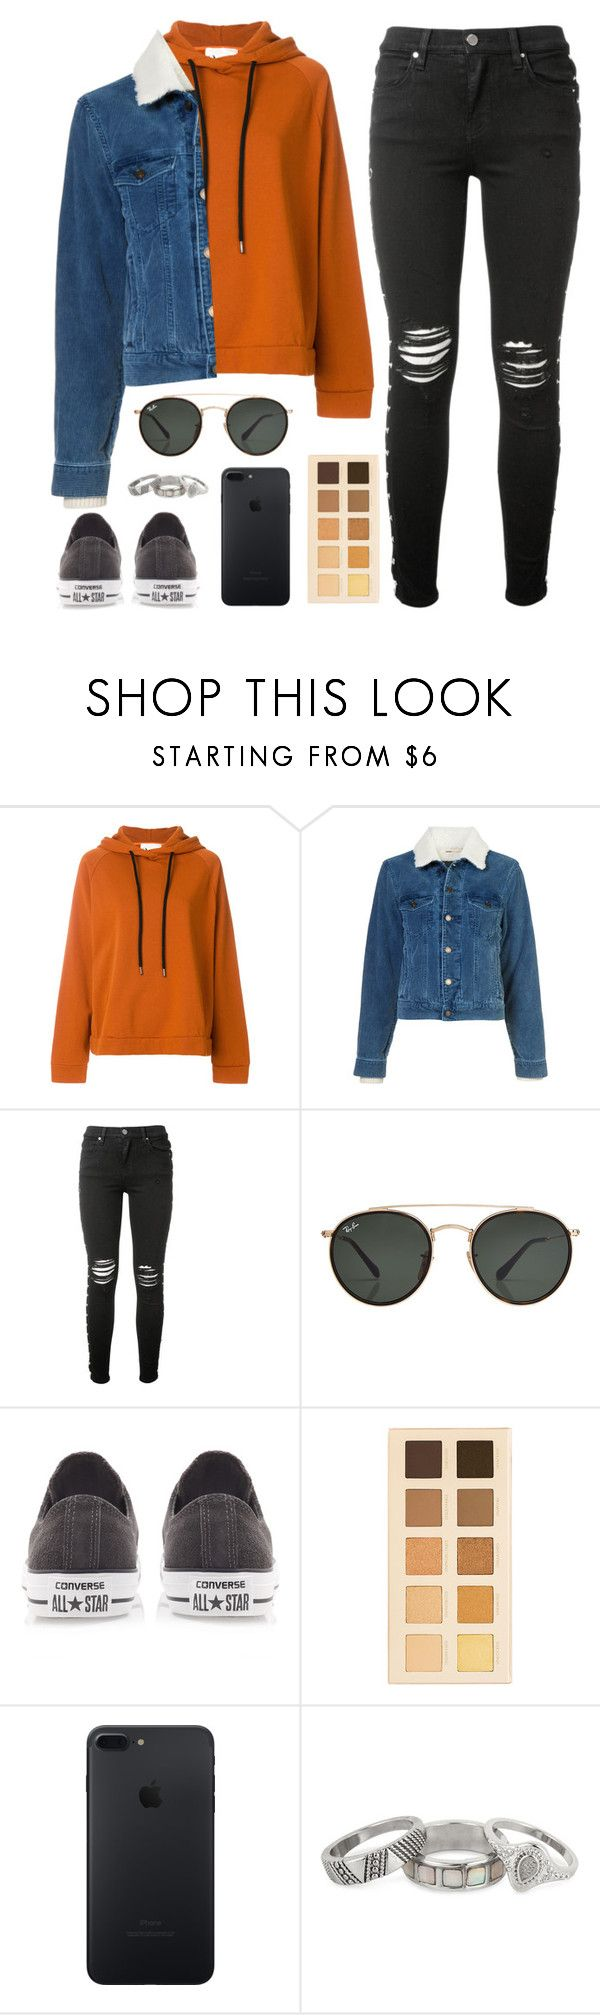 """given"" by lola-styleson on Polyvore featuring 8PM, Yves Saint Laurent, AMIRI, Ray-Ban, Converse, LORAC and Matthew Williamson"